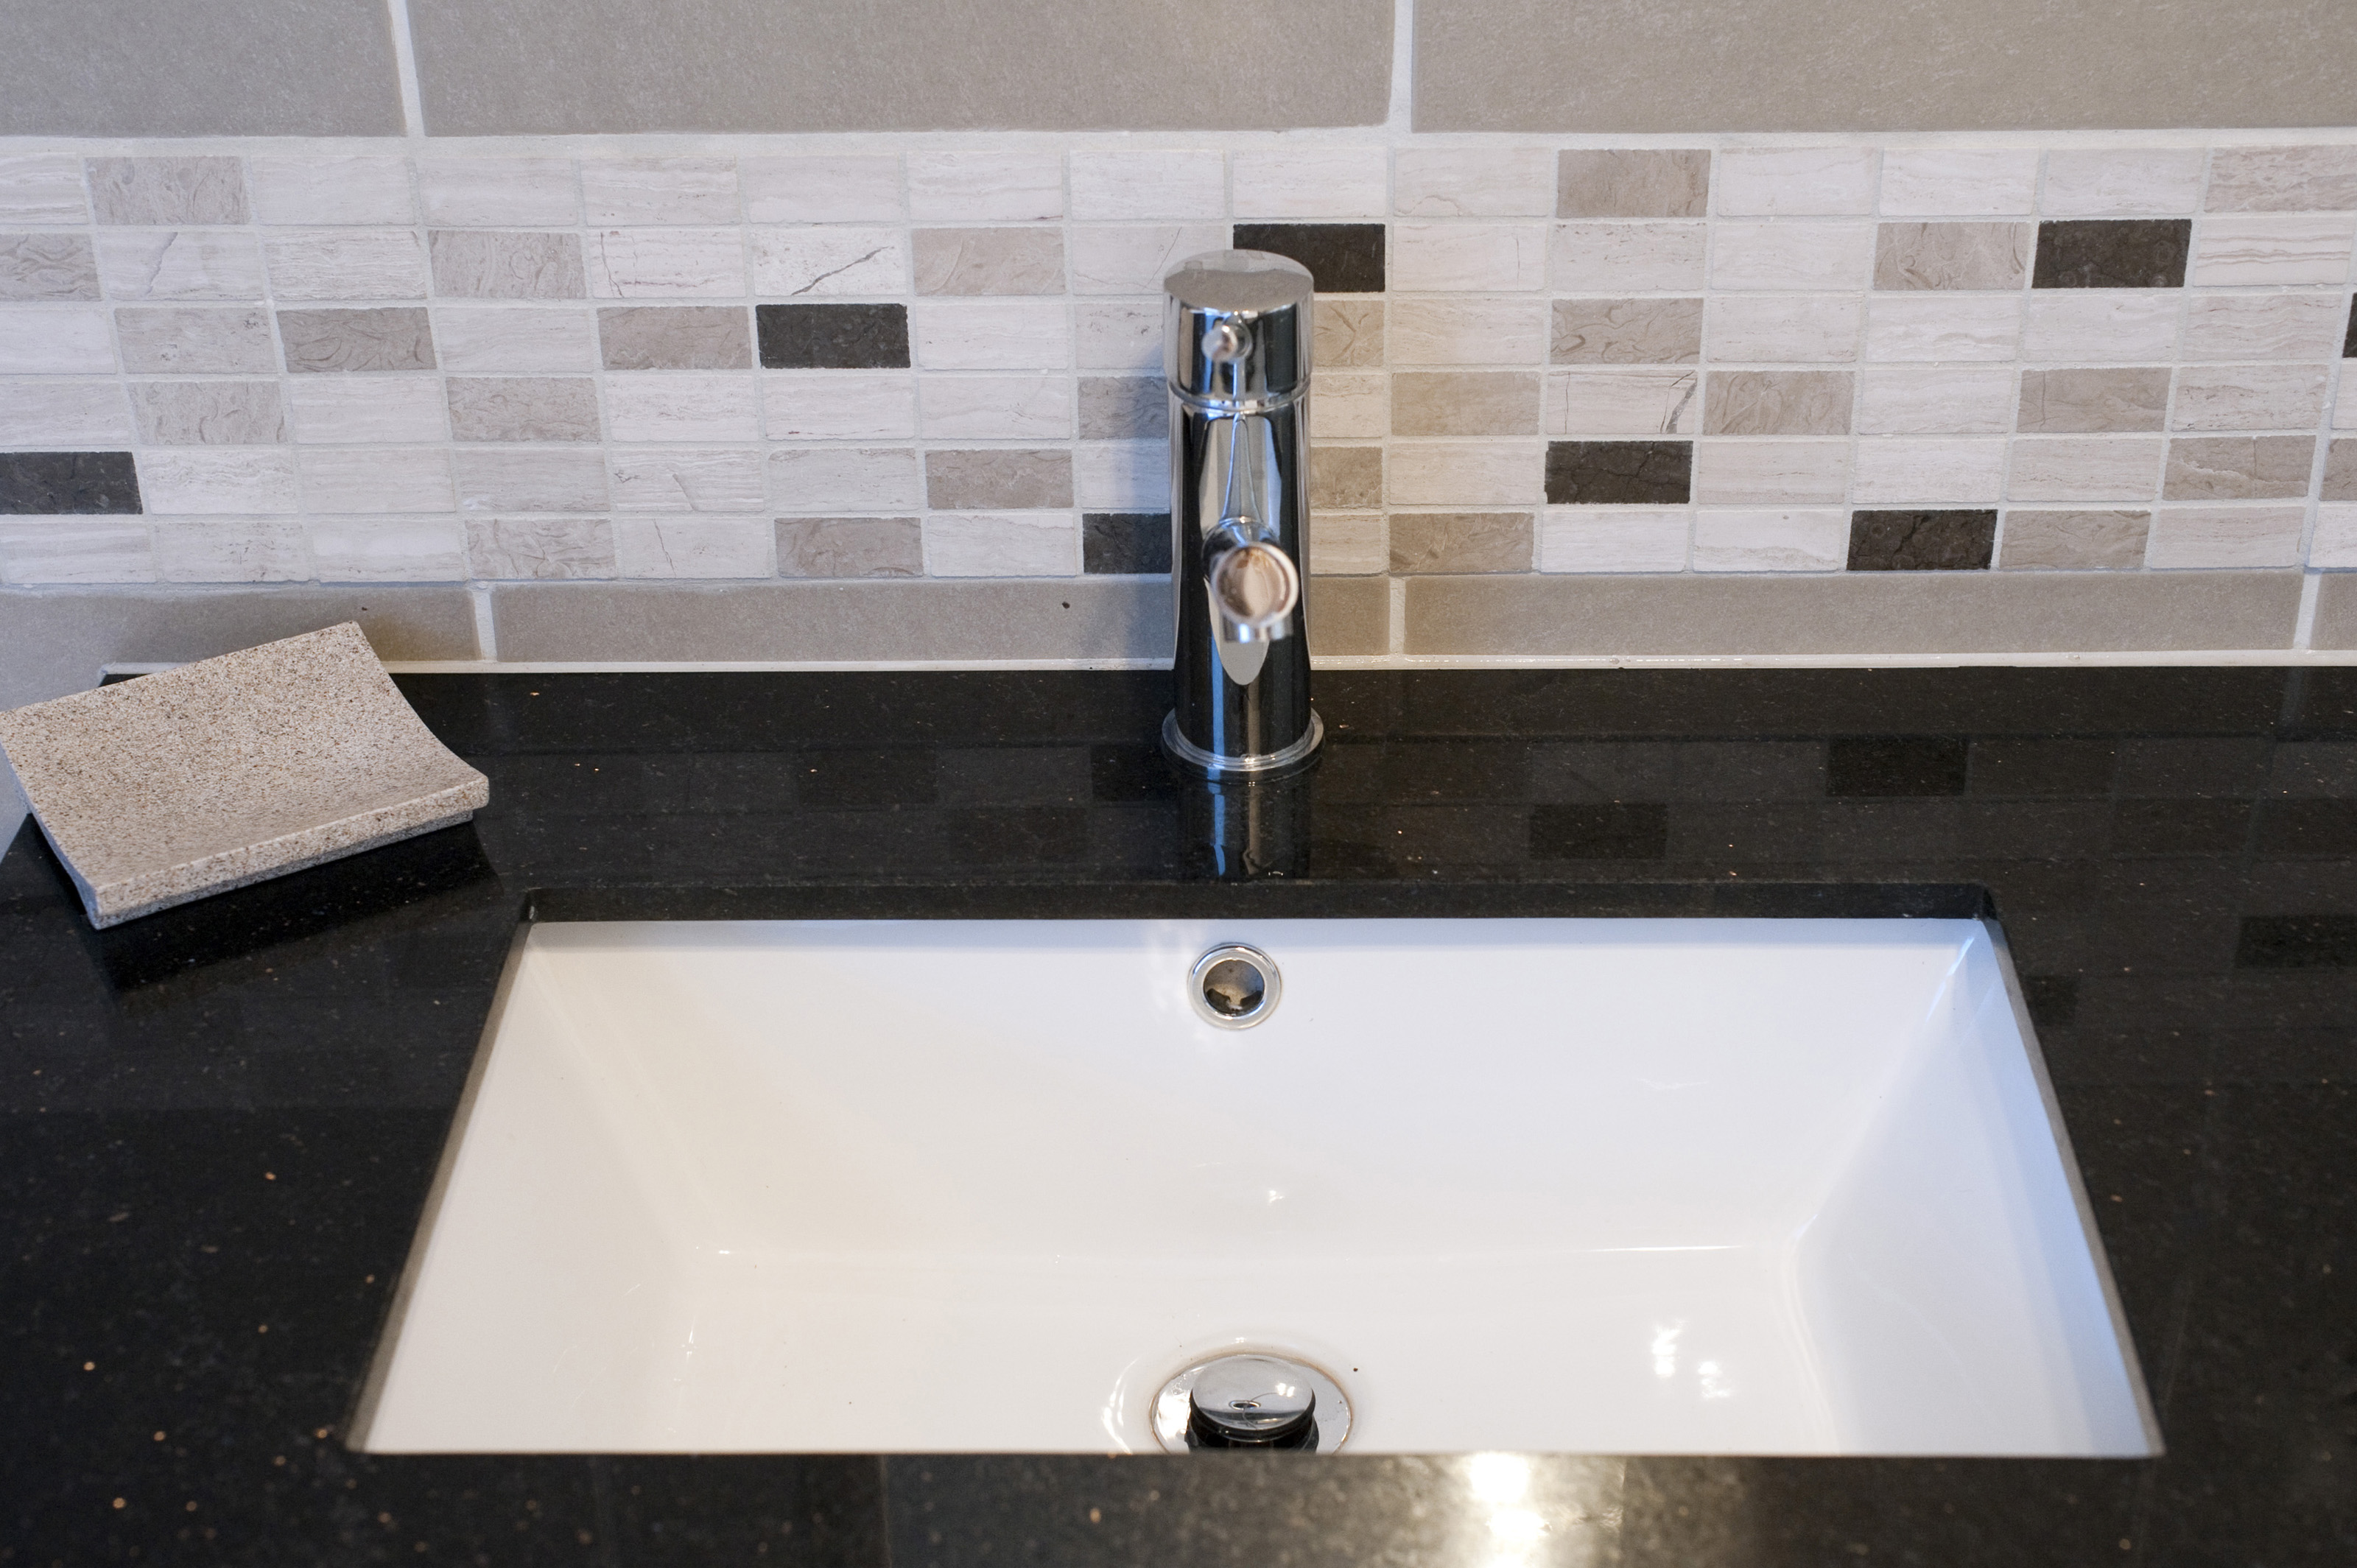 or product nameek wall white ceramic sinks bathroom drop square sink s ml by scarabeo in mounted